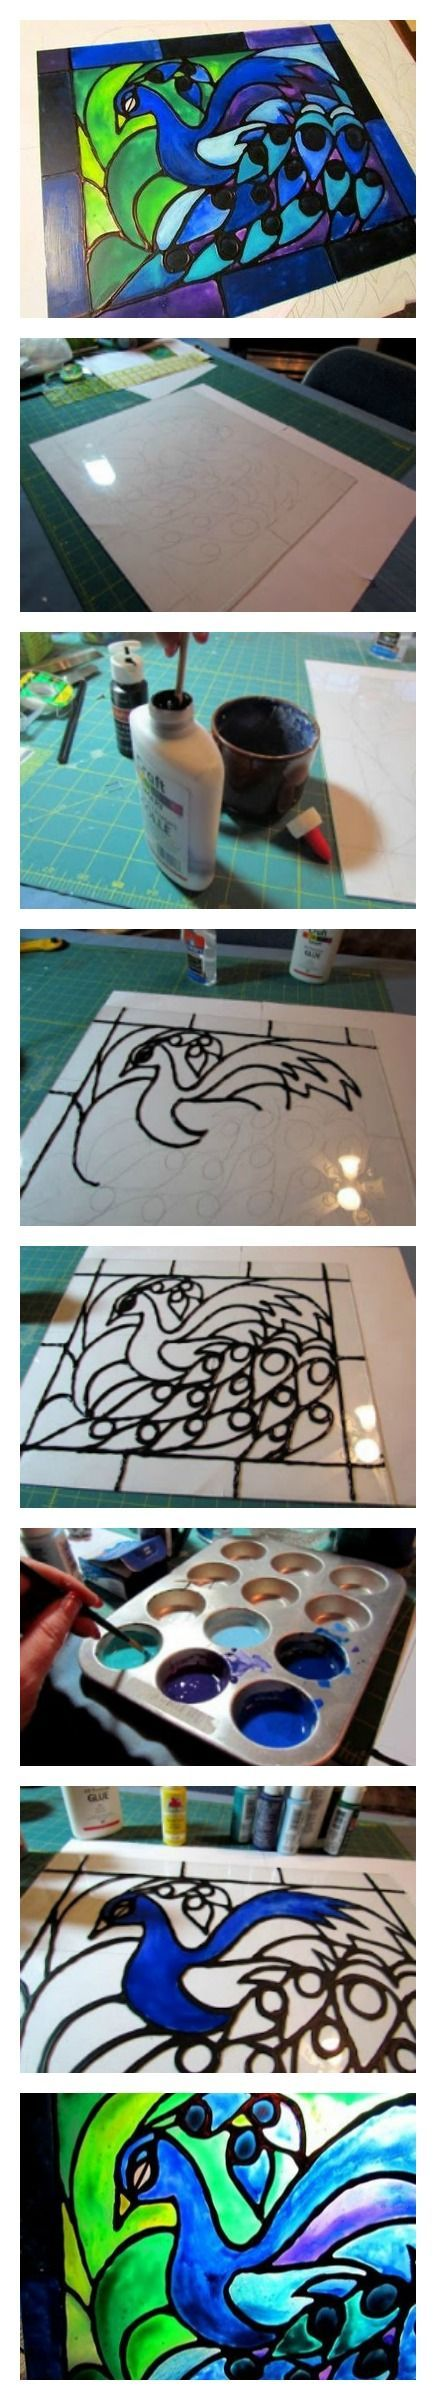 Faux stained glass created from acrylic paint and glue. To make the project even more challenging, have your students draw their own patterns.